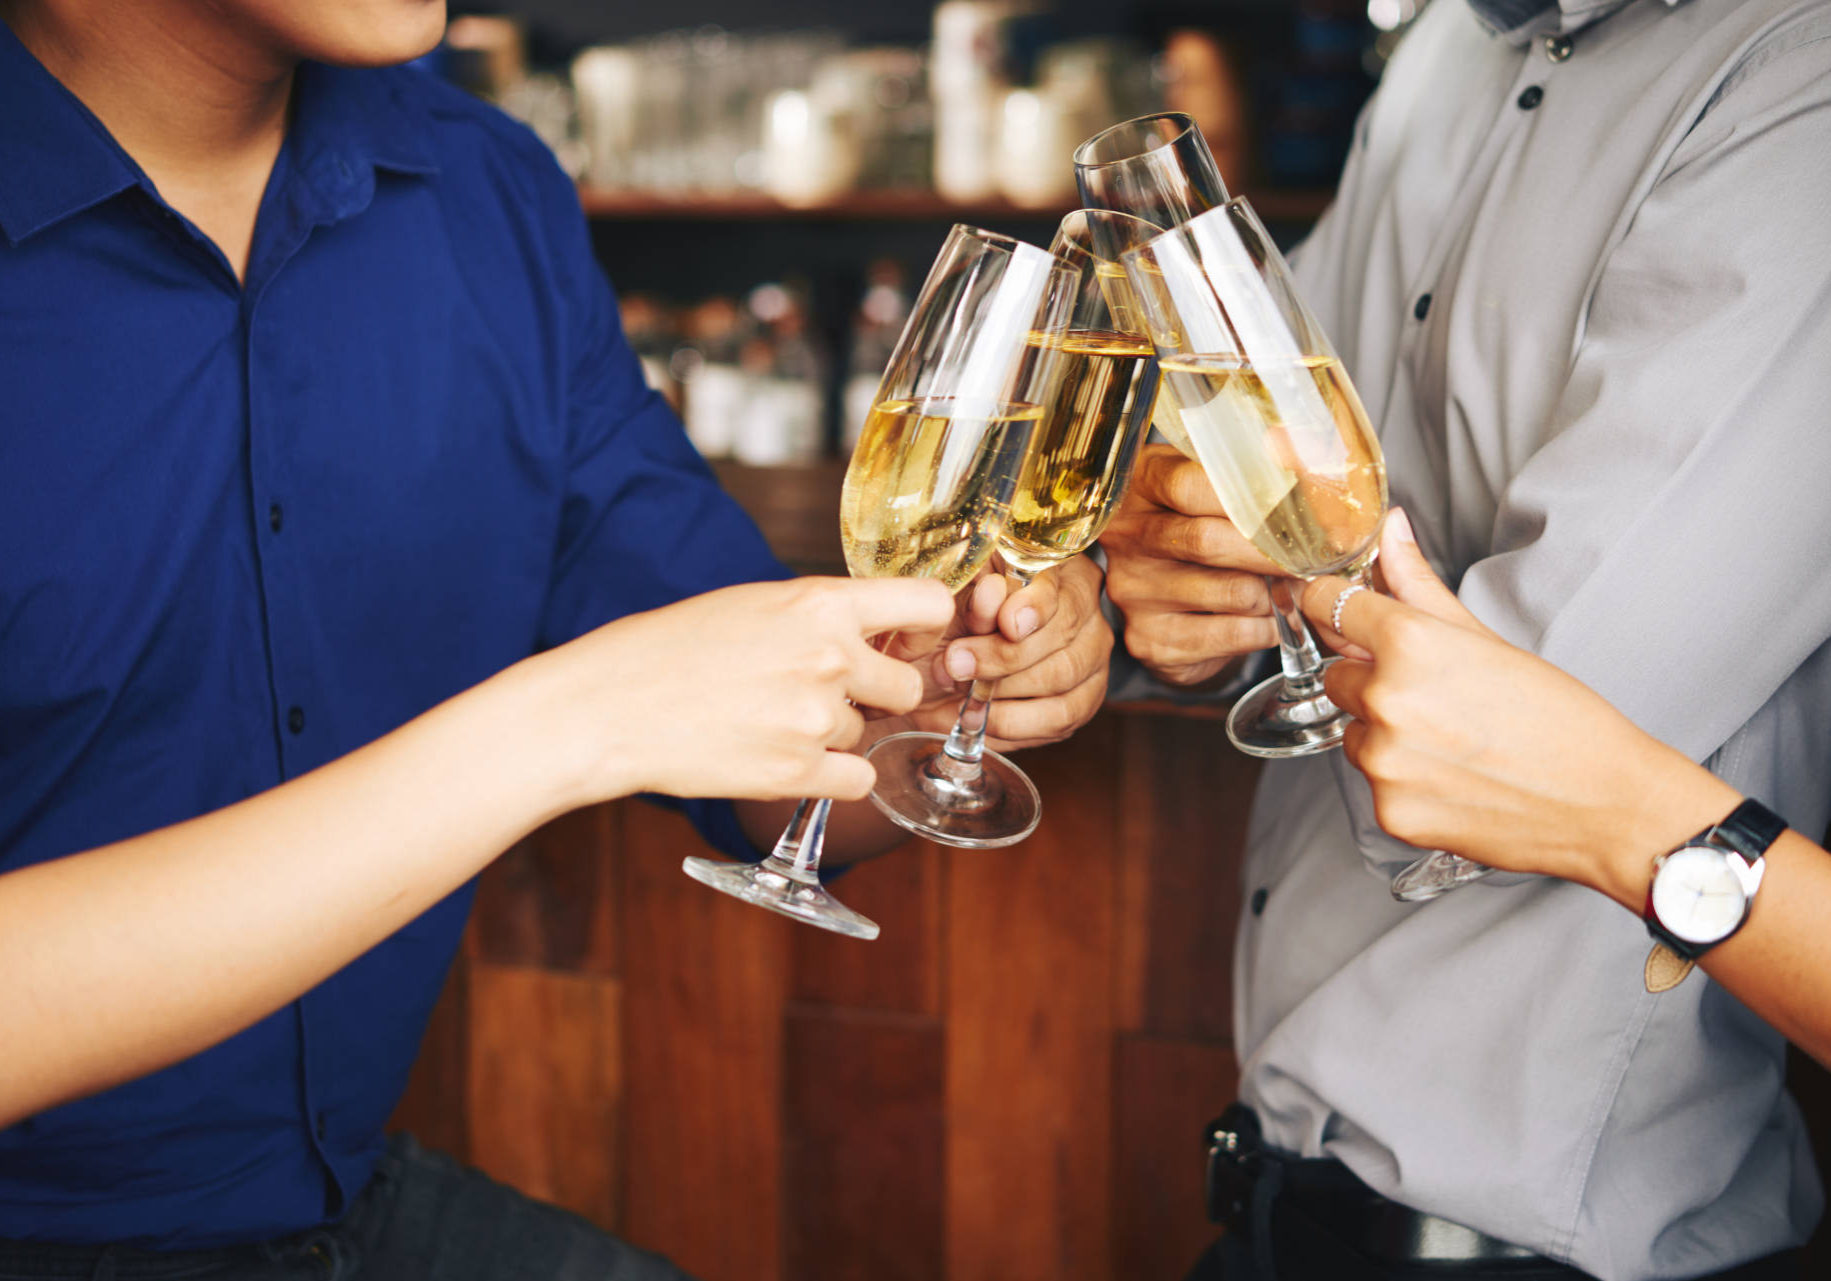 Close-up image of people drinking champagne to celebrate something